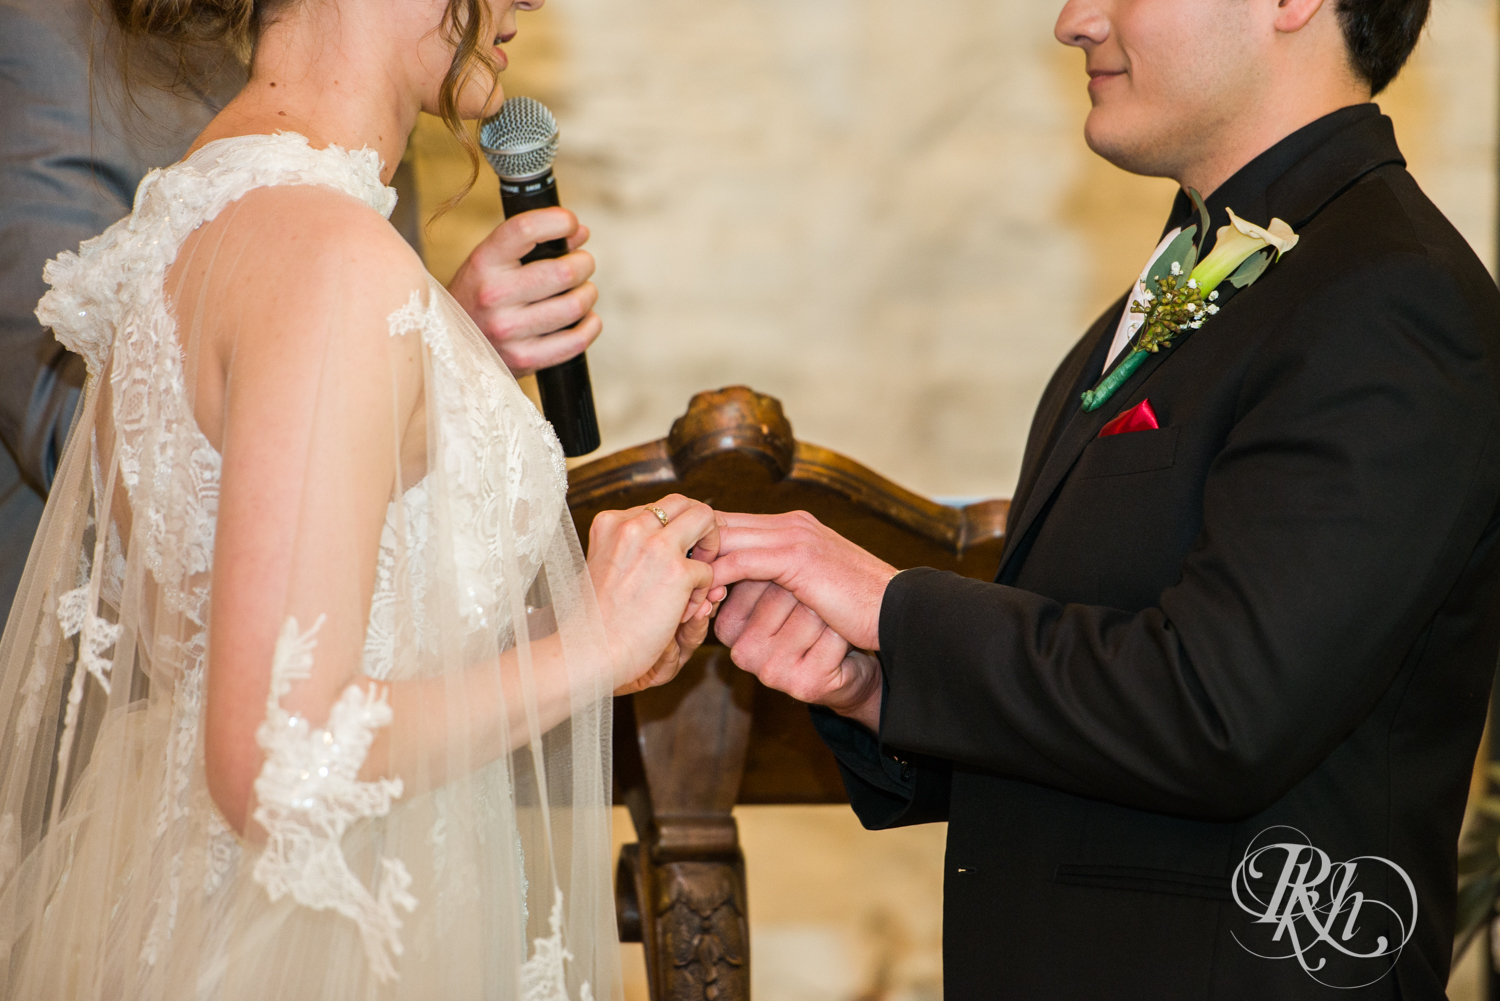 Katie and Brian - Minnesota Wedding Photography - Kellerman's Event Center - RKH Images - Blog  (37 of 58).jpg